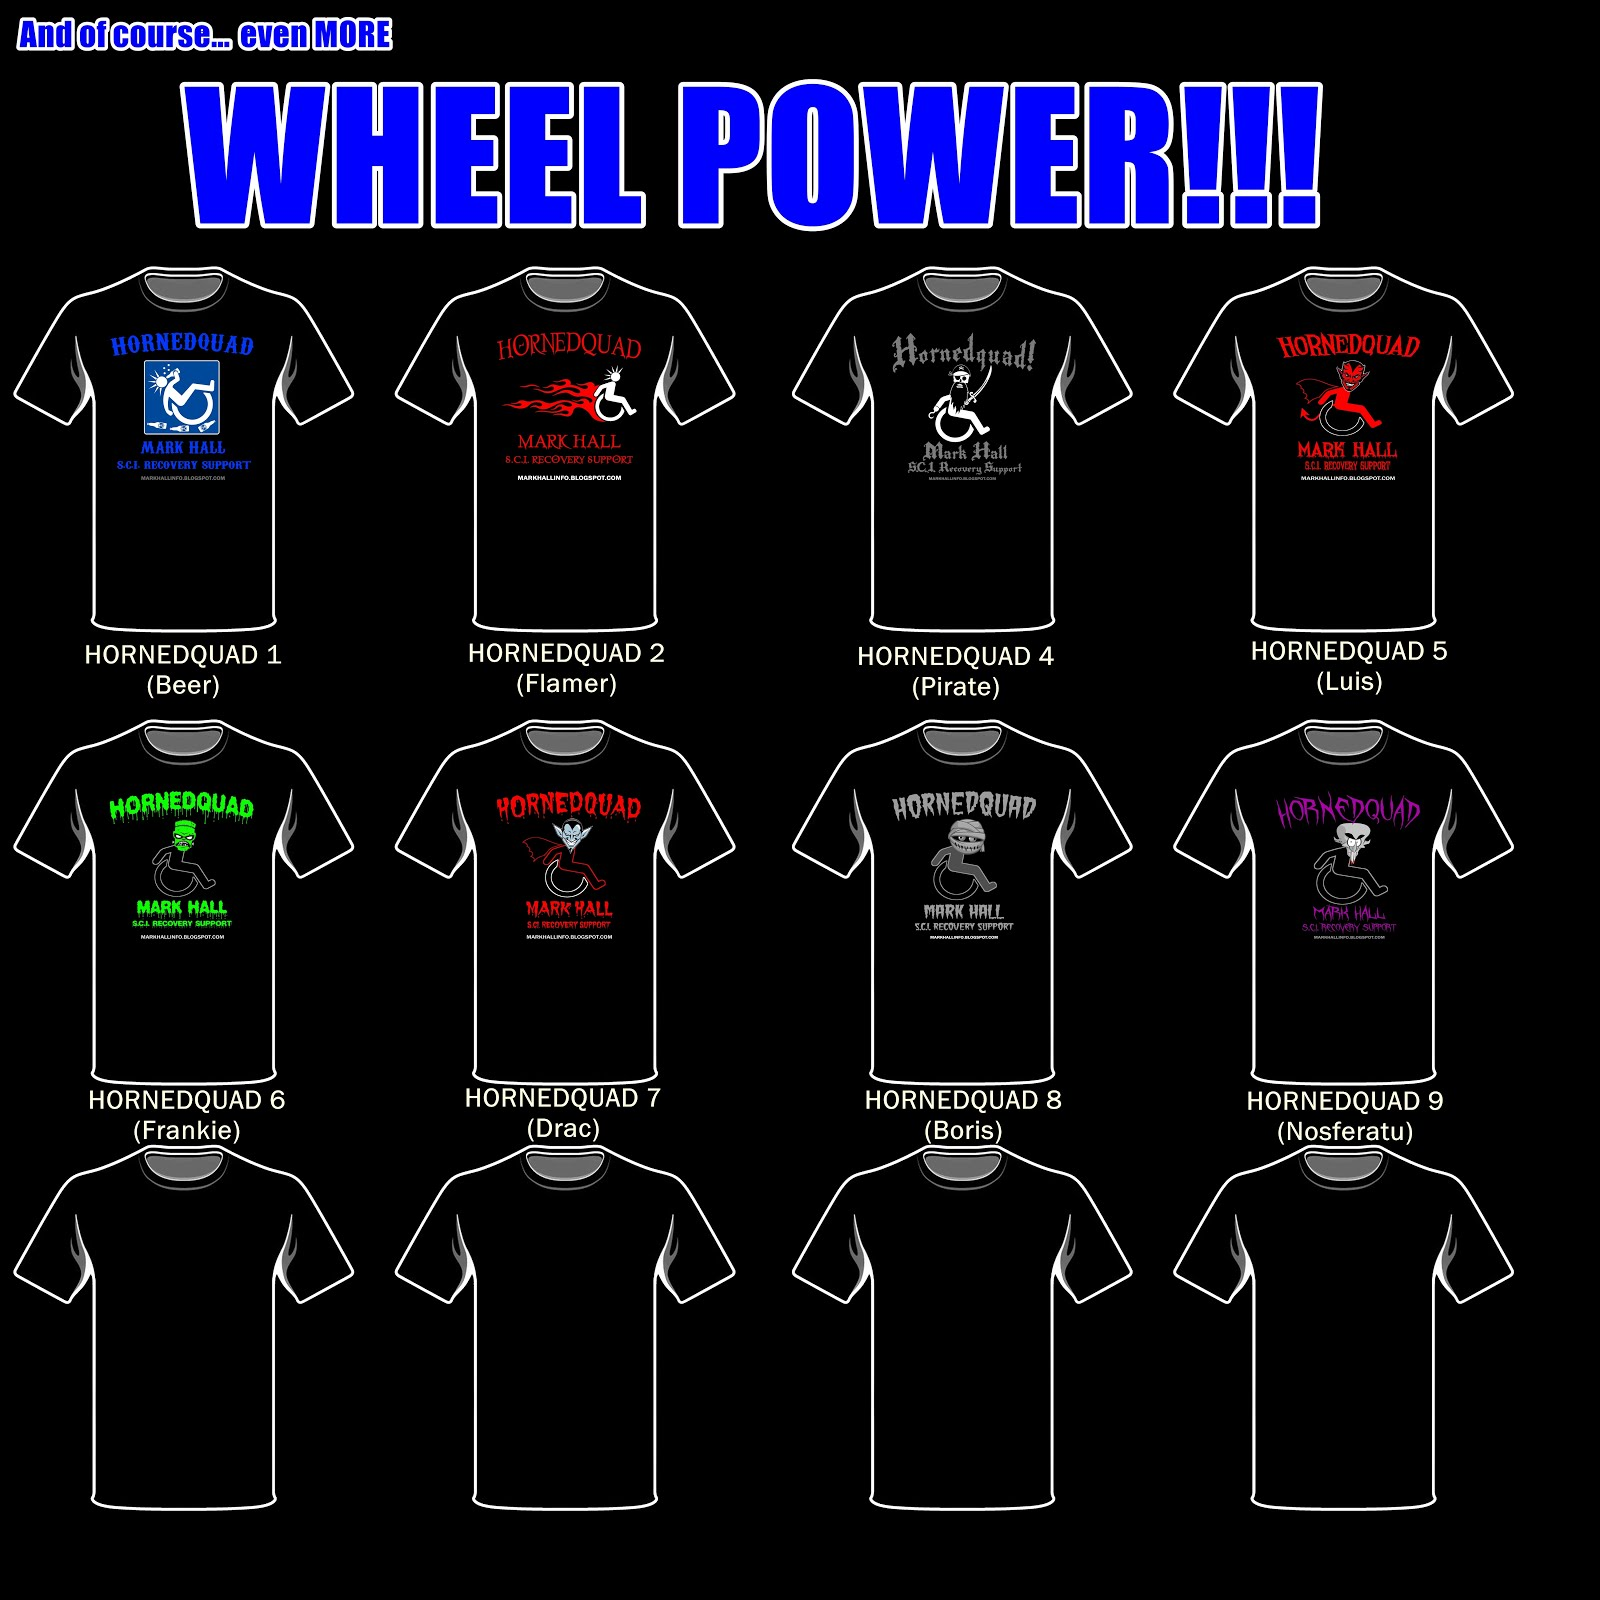 Wheel POWER 3